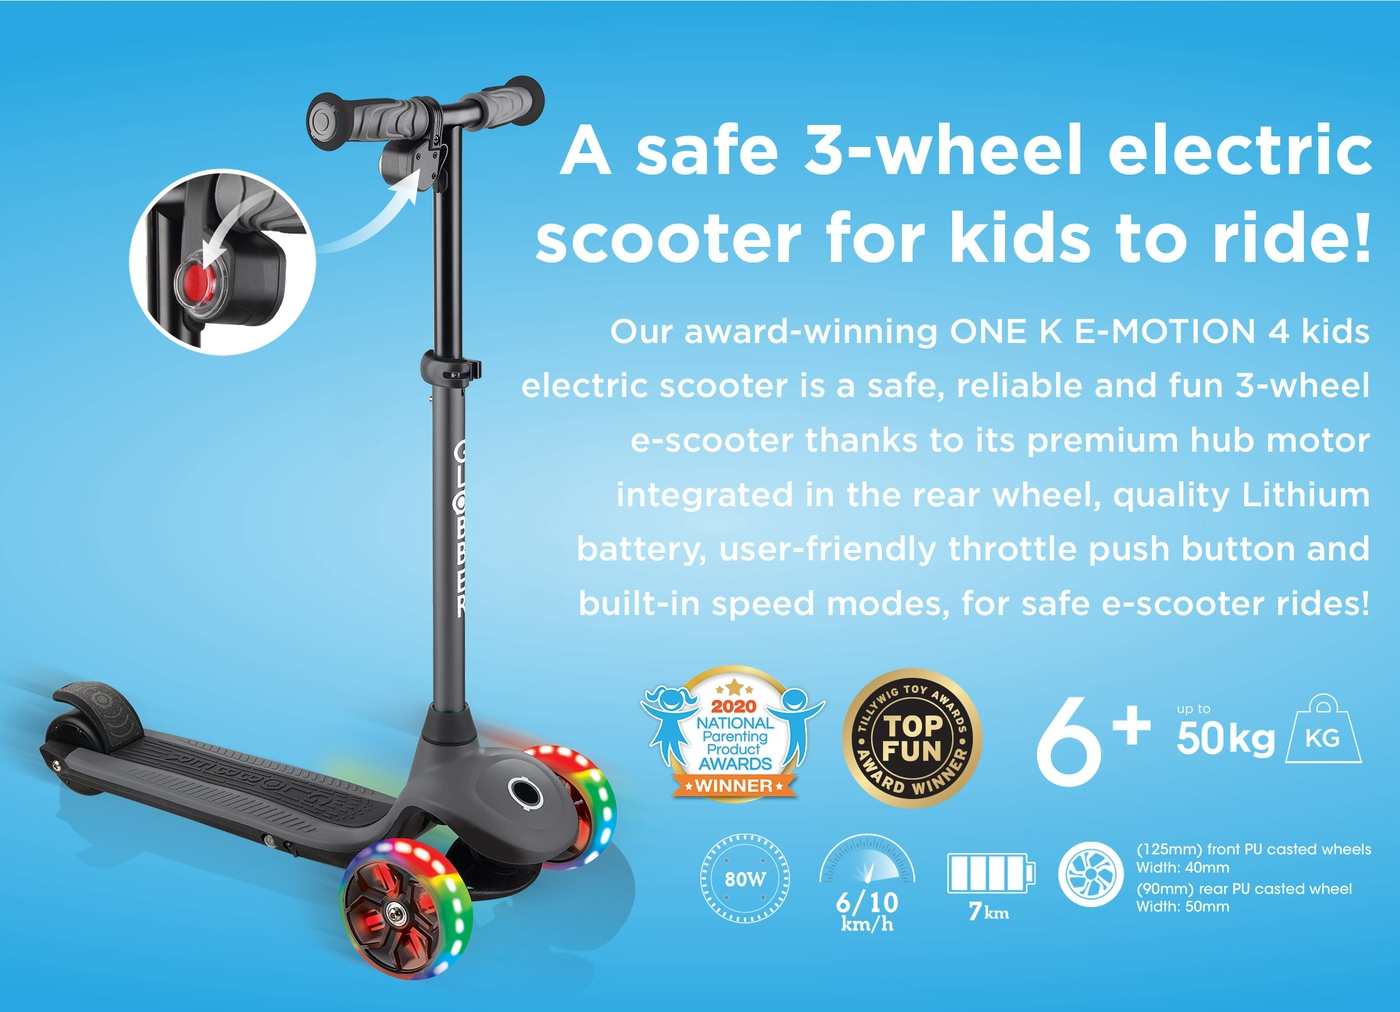 A safe 3-wheel electric scooter for kids to ride!